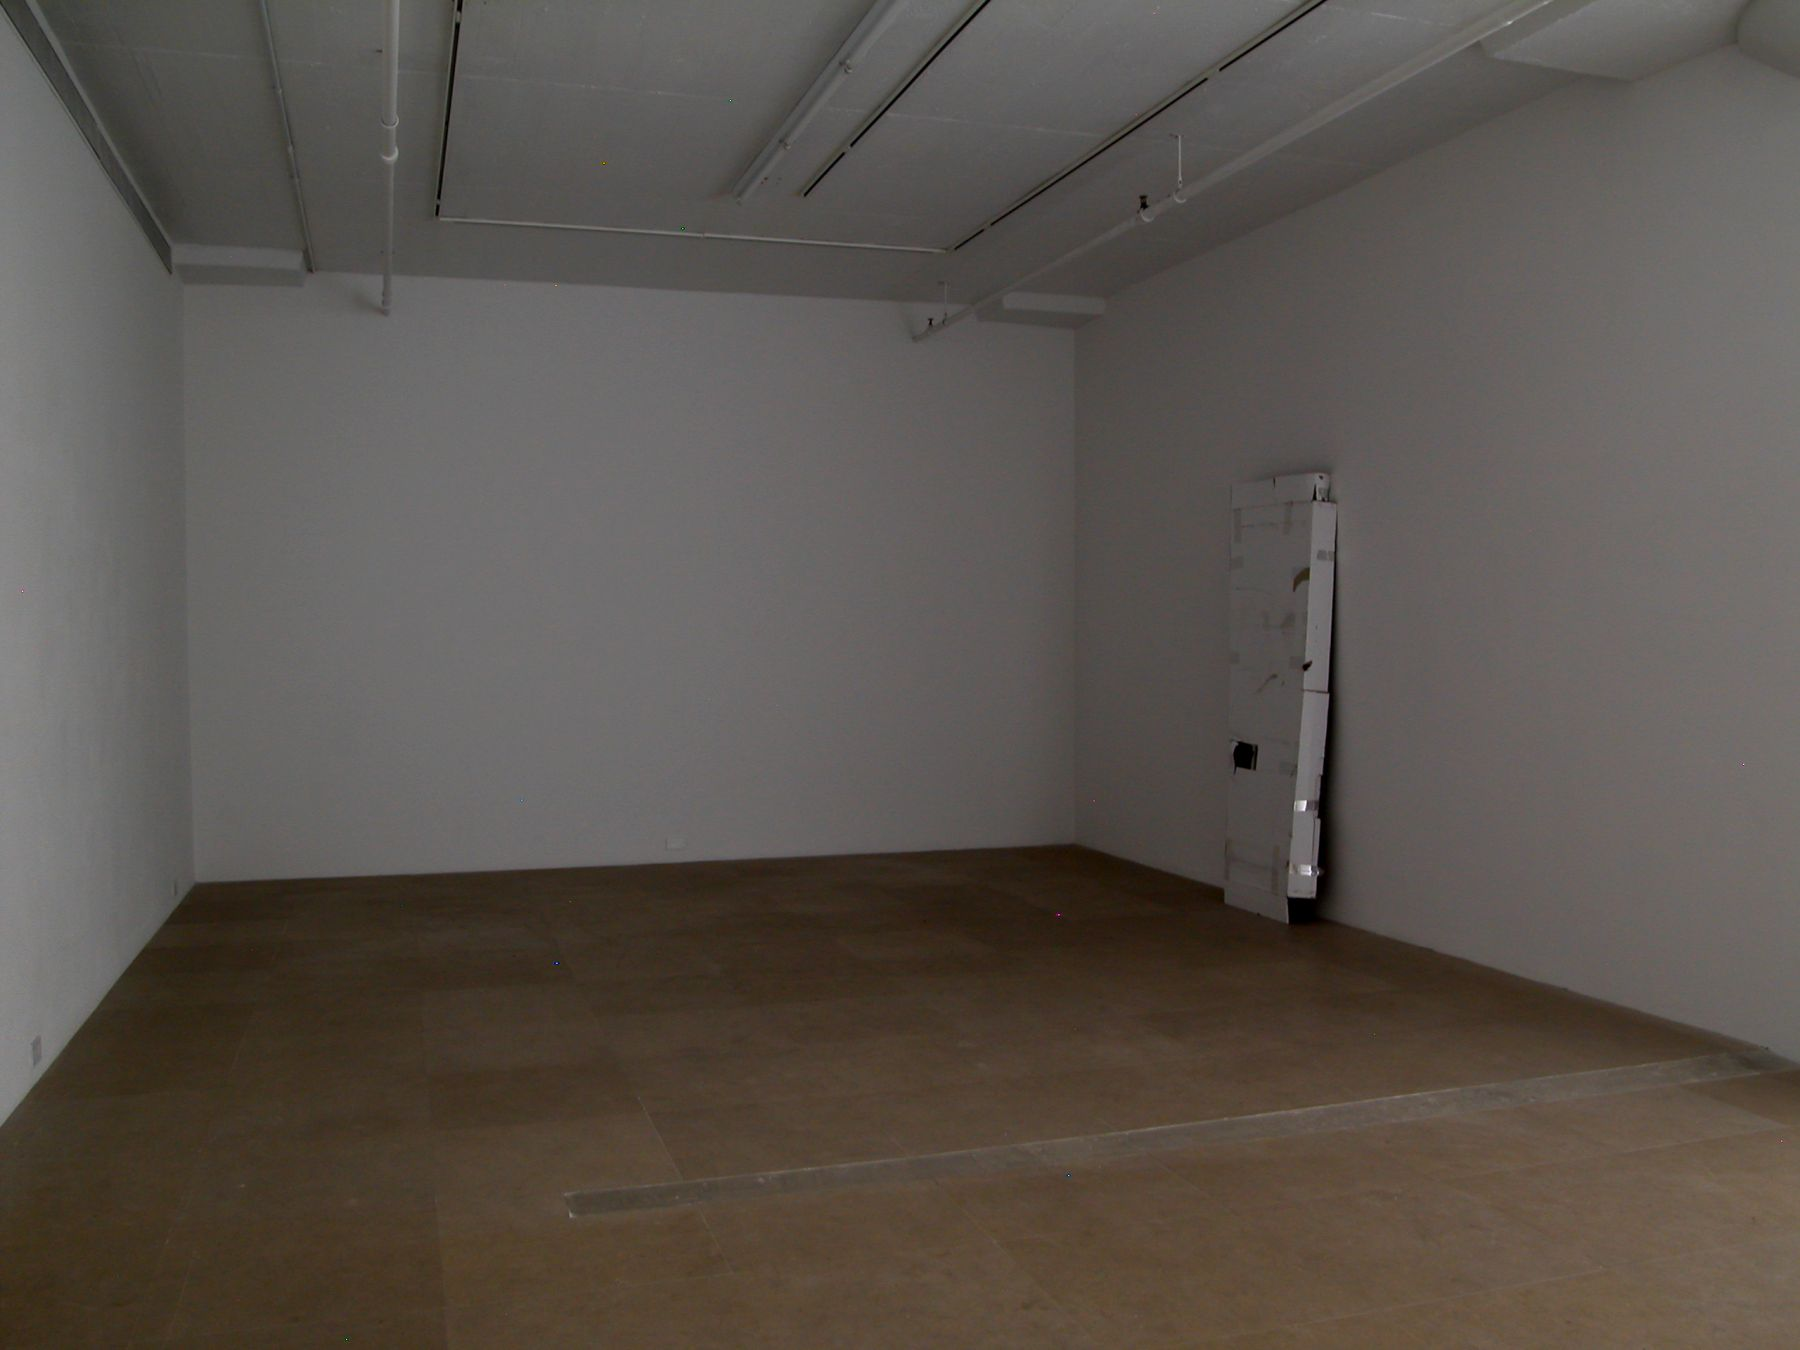 Installation view, Greene Naftali, New York, 2008